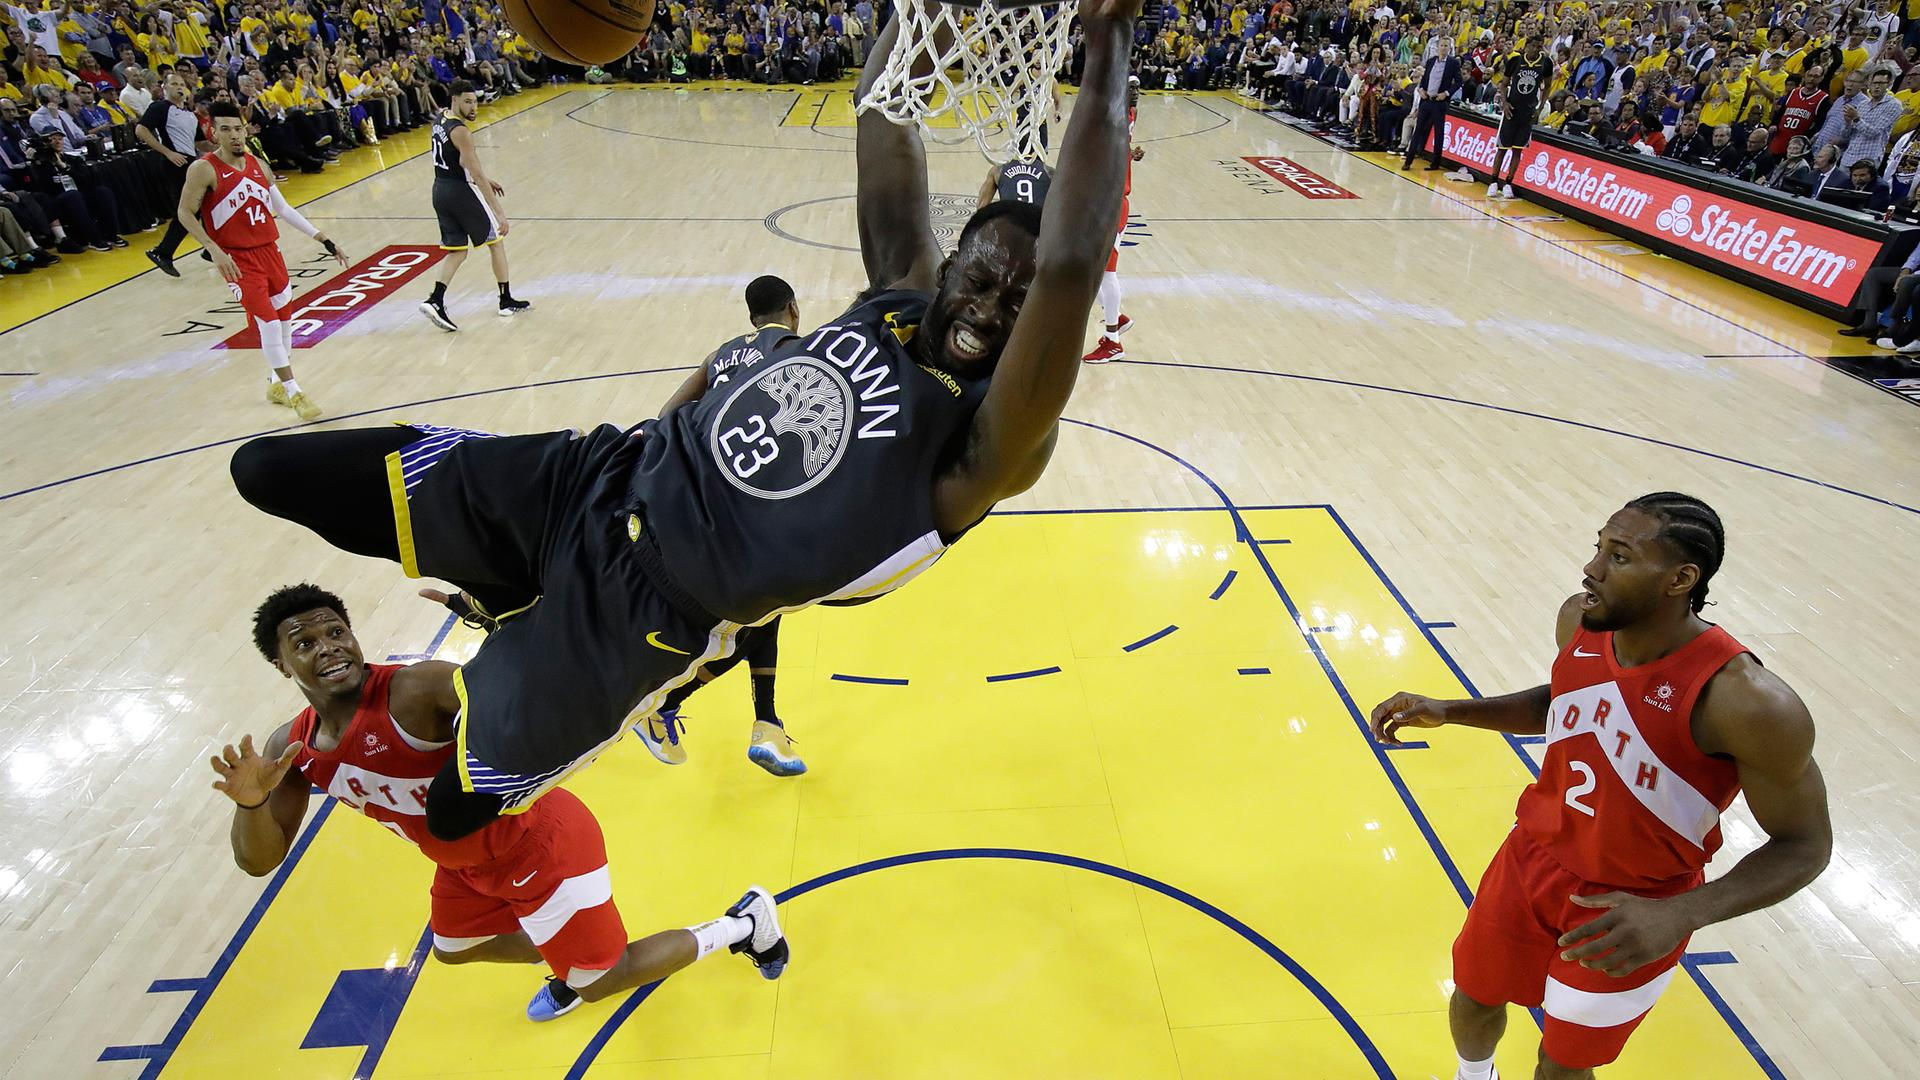 Warriors' Draymond Green says he's back on 'playoff diet' this season